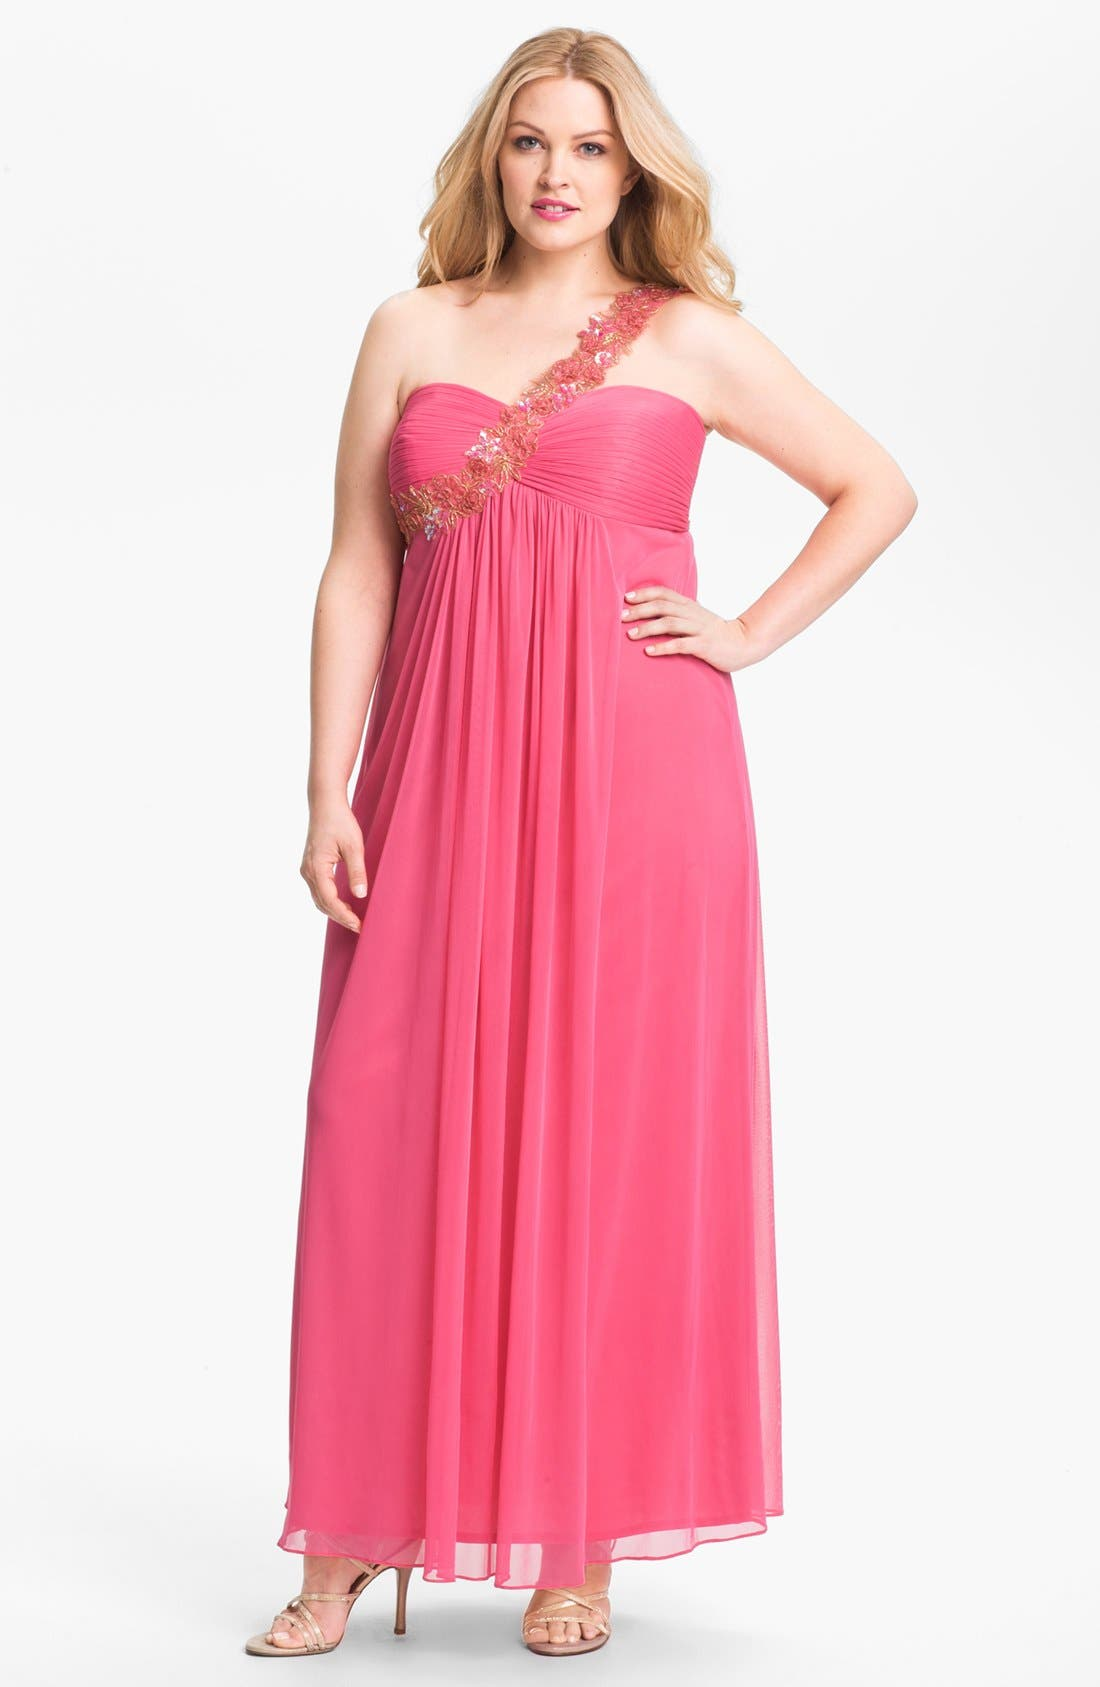 Alternate Image 1 Selected - Xscape Embellished One Shoulder Mesh Gown (Plus Size) (Online Only)